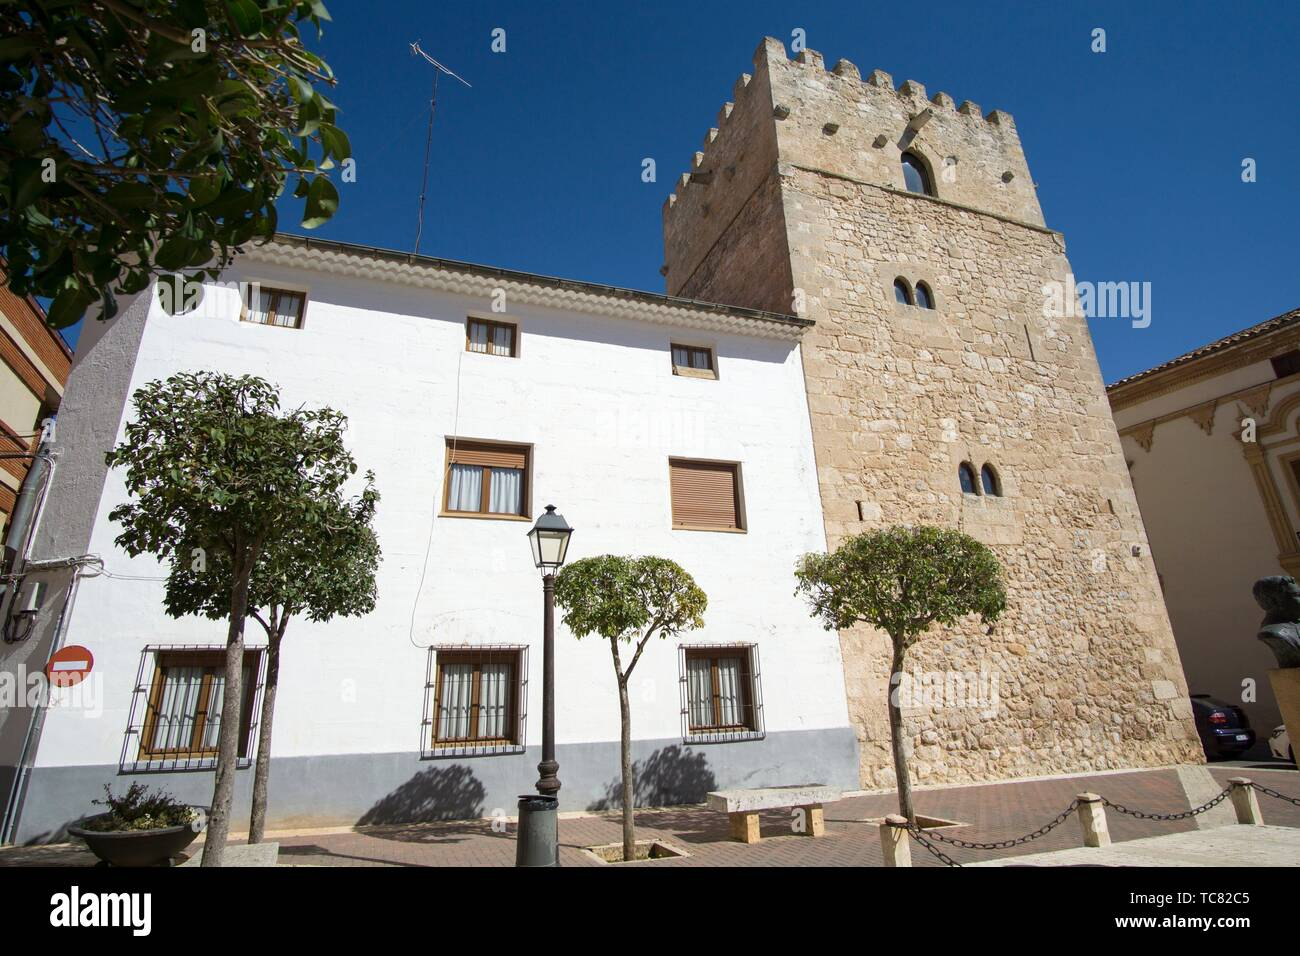 San Clemente town in Cuenca Castile La Mancha Spain. The old tower. Stock Photo